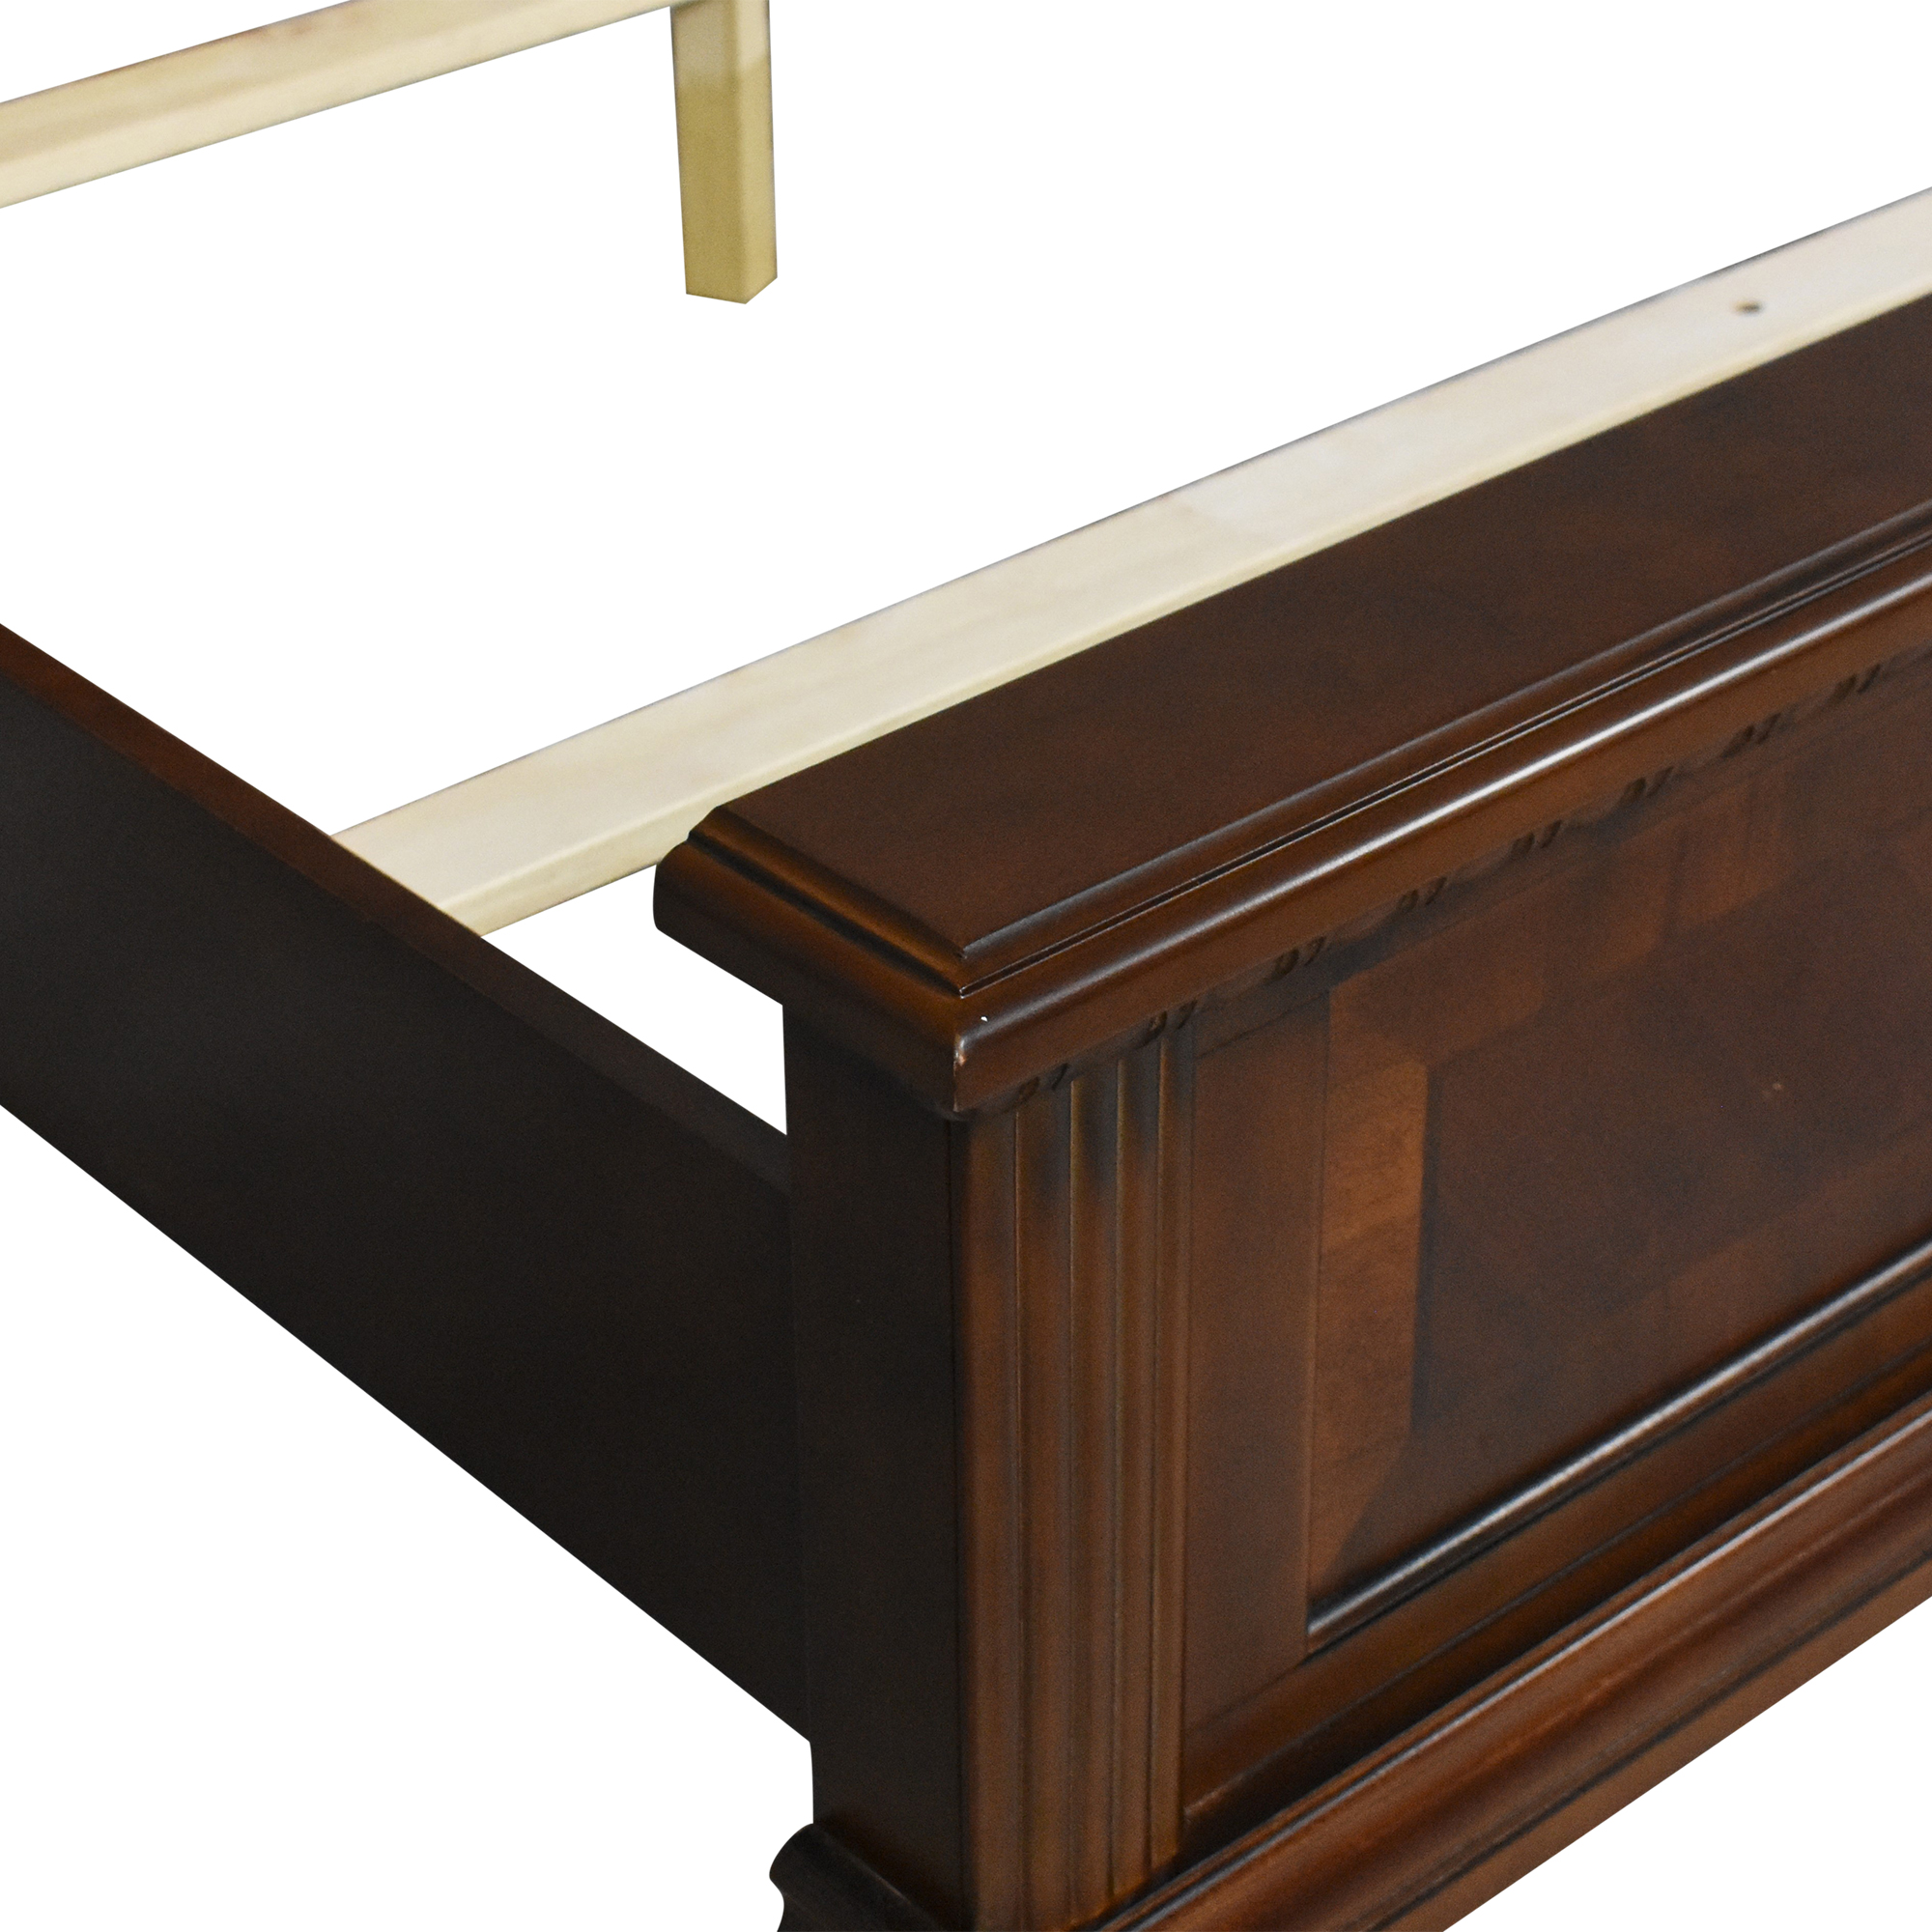 Raymour & Flanigan Raymour & Flanigan Ashbury Queen Panel Bed second hand